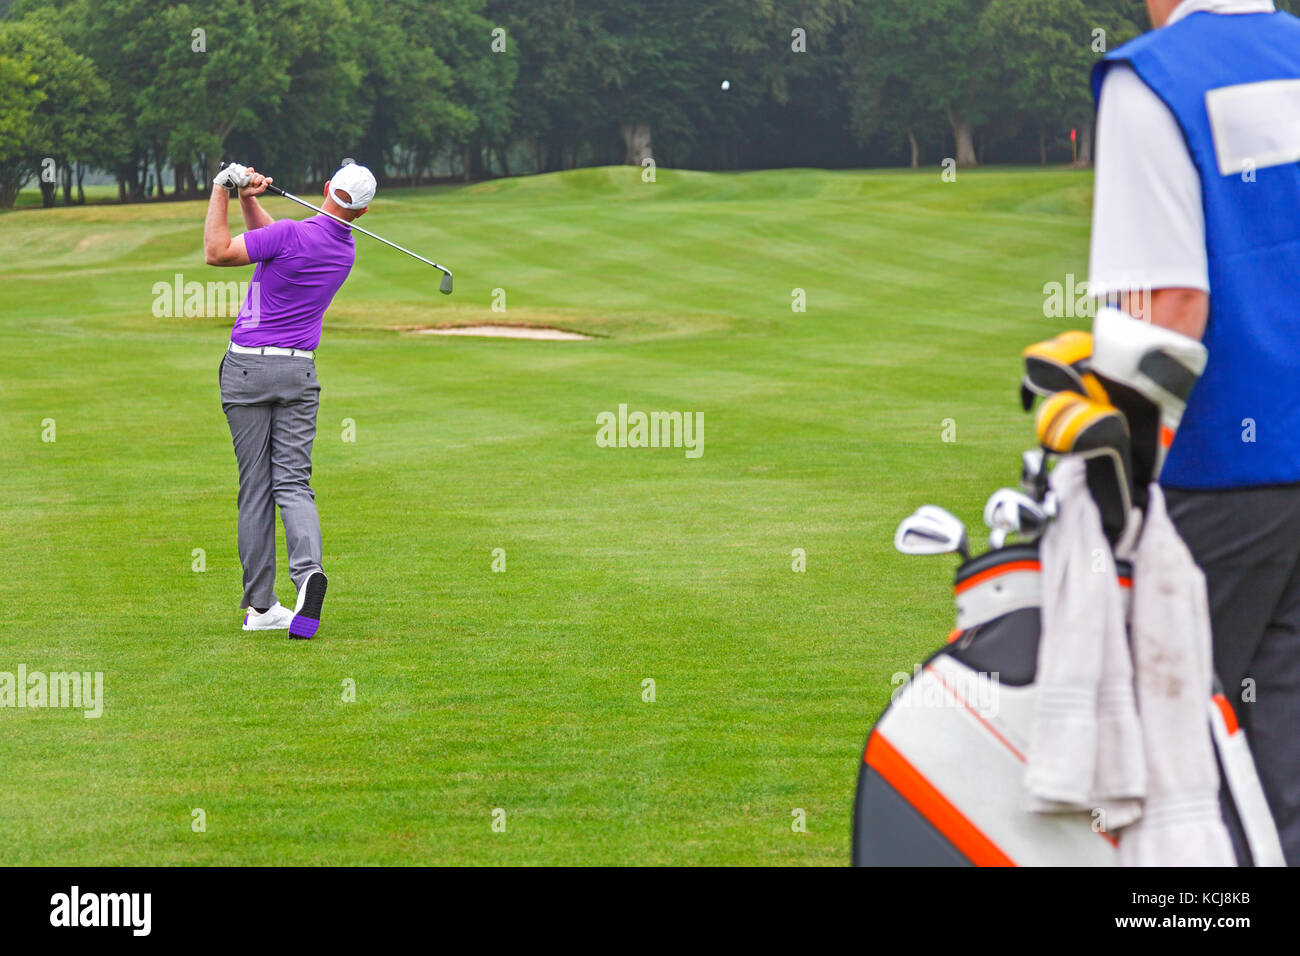 A professional golfer playing an iron shot on a par 4 with his caddy looking on. - Stock Image